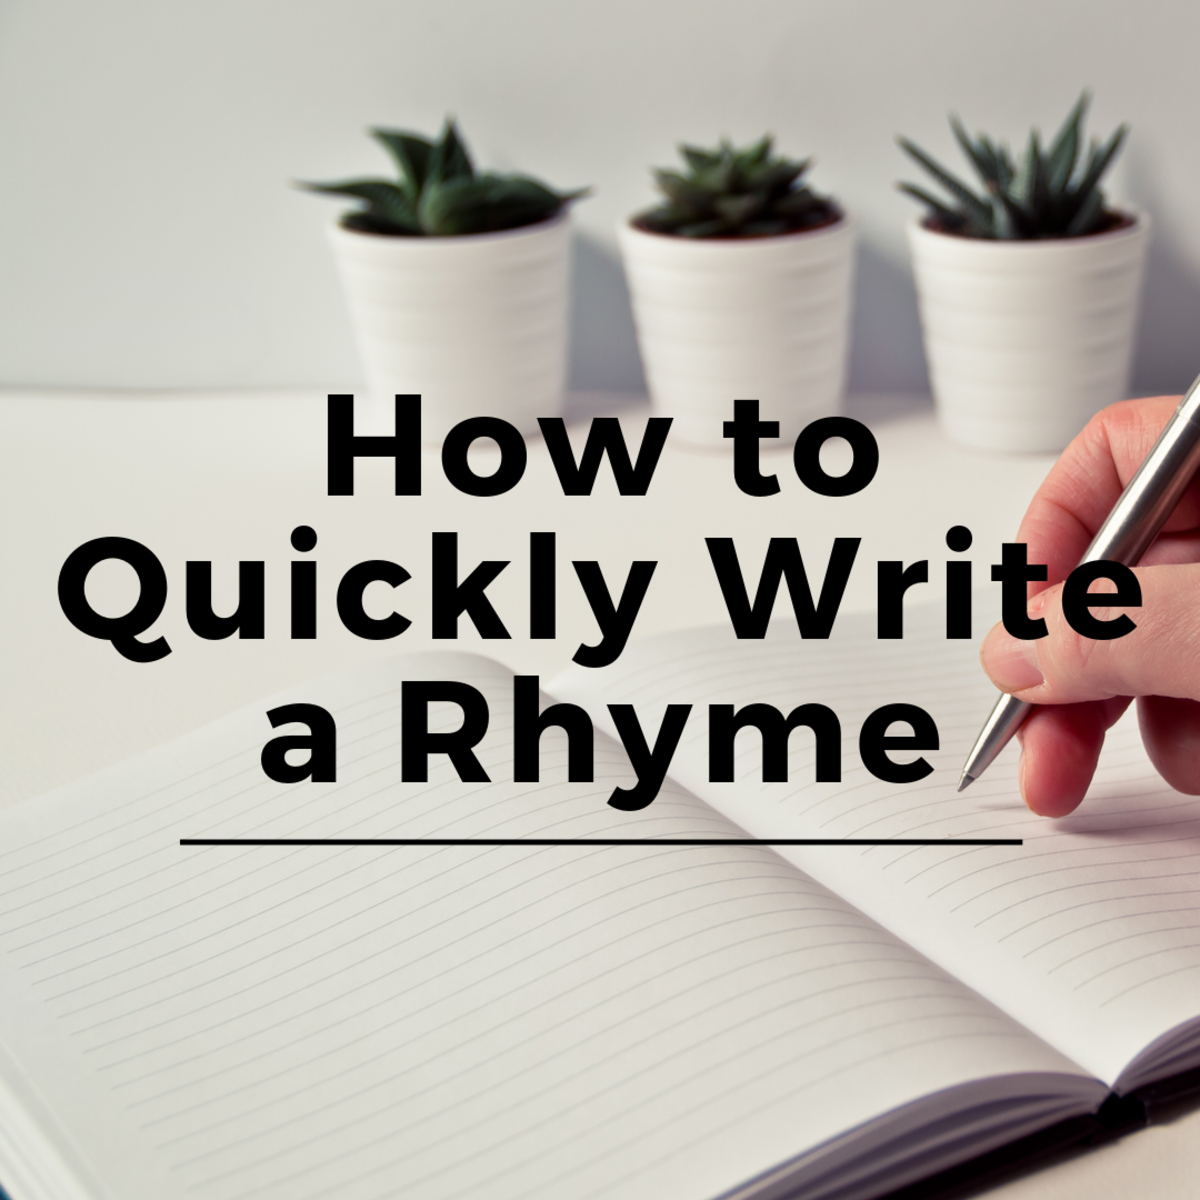 How to Quickly Write a Rhyme